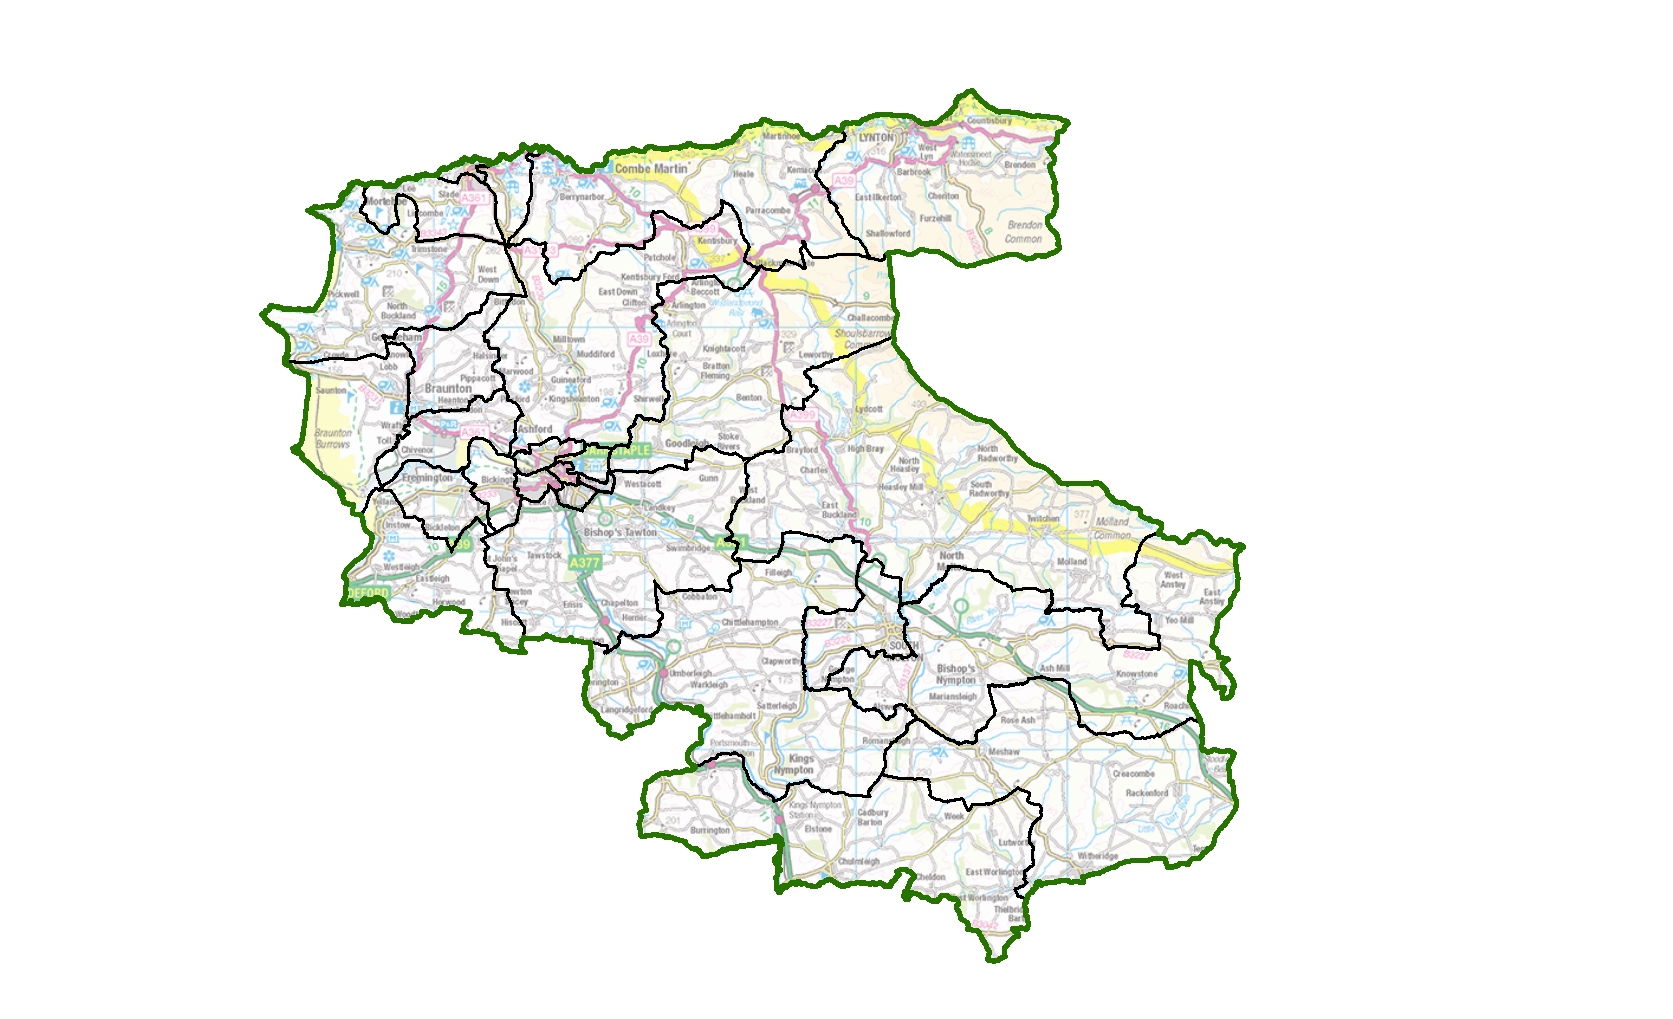 Council ward boundaries in North Devon are set to change. Find and use this image of the current wards at: